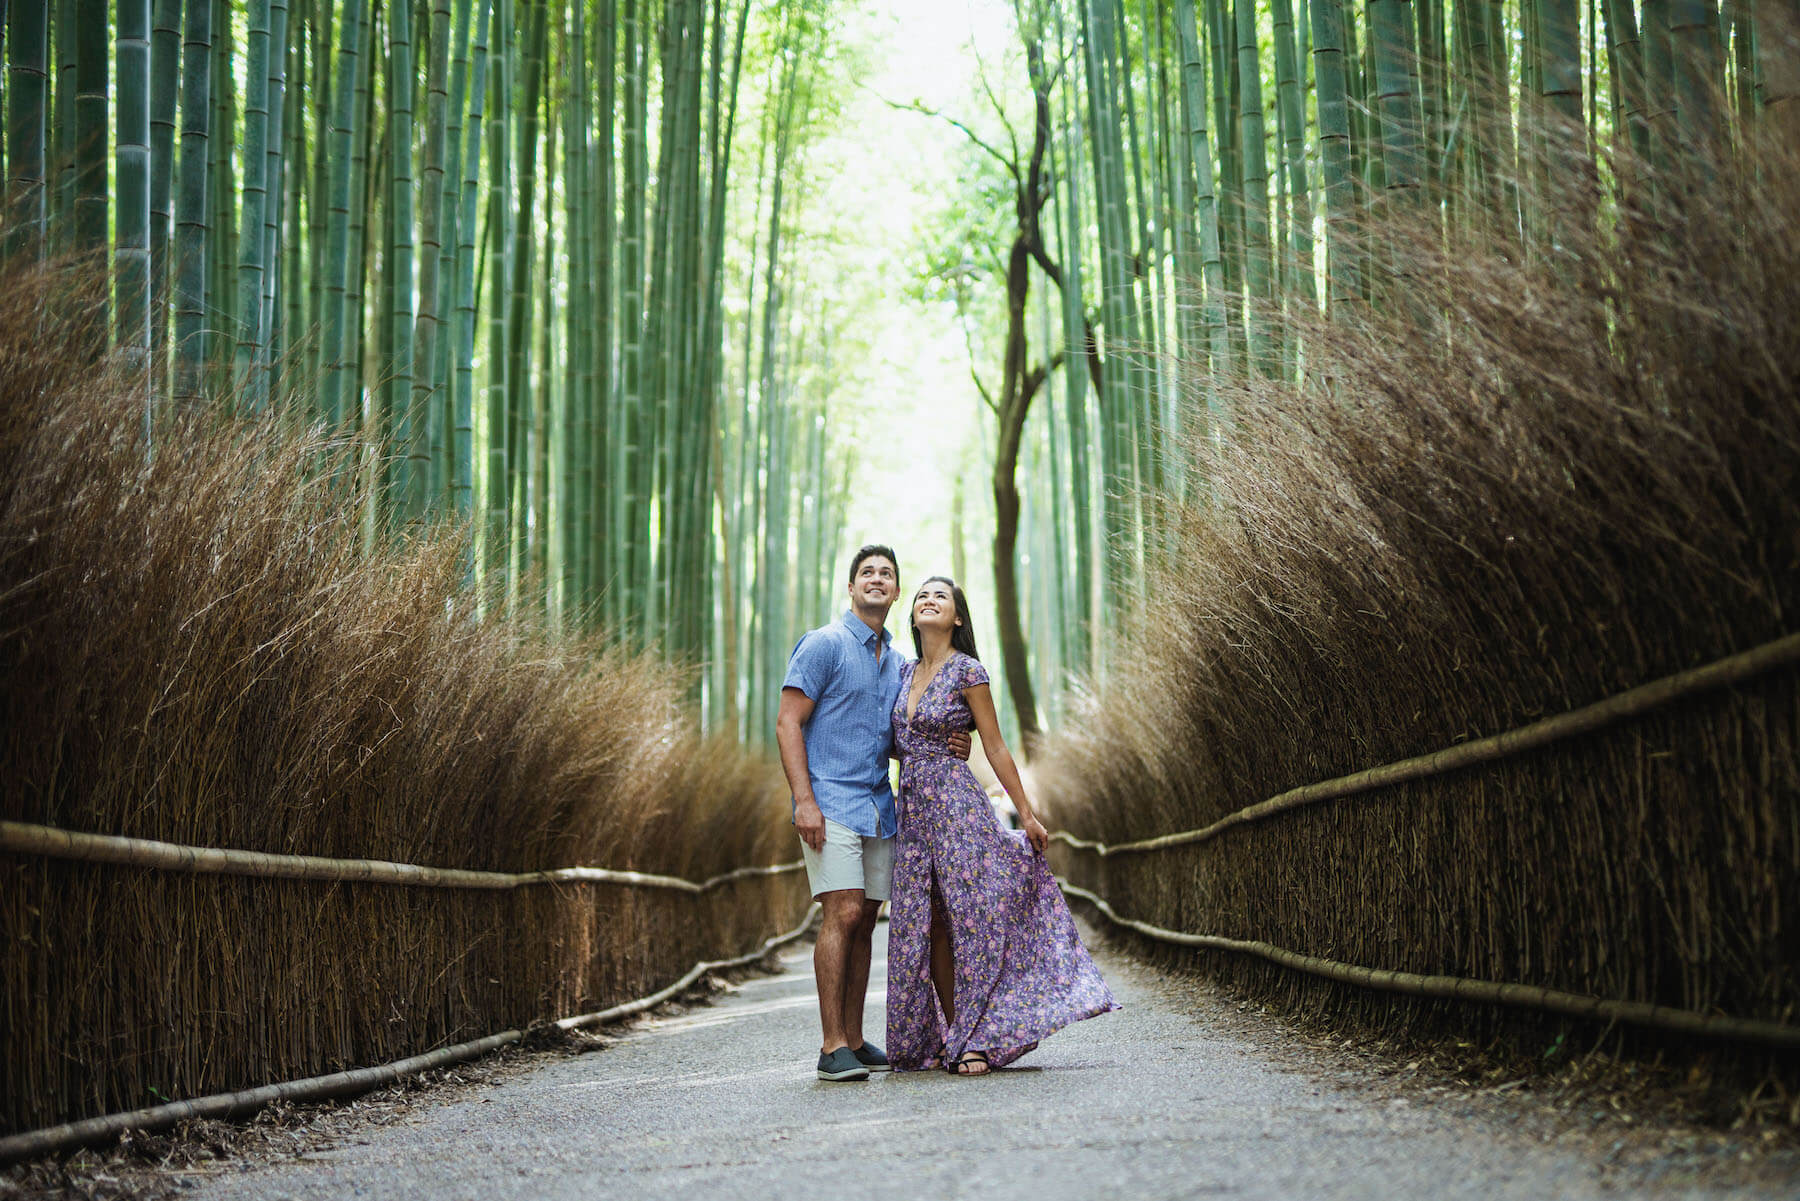 couple walking in bamboo forest in Kyoto, Japan